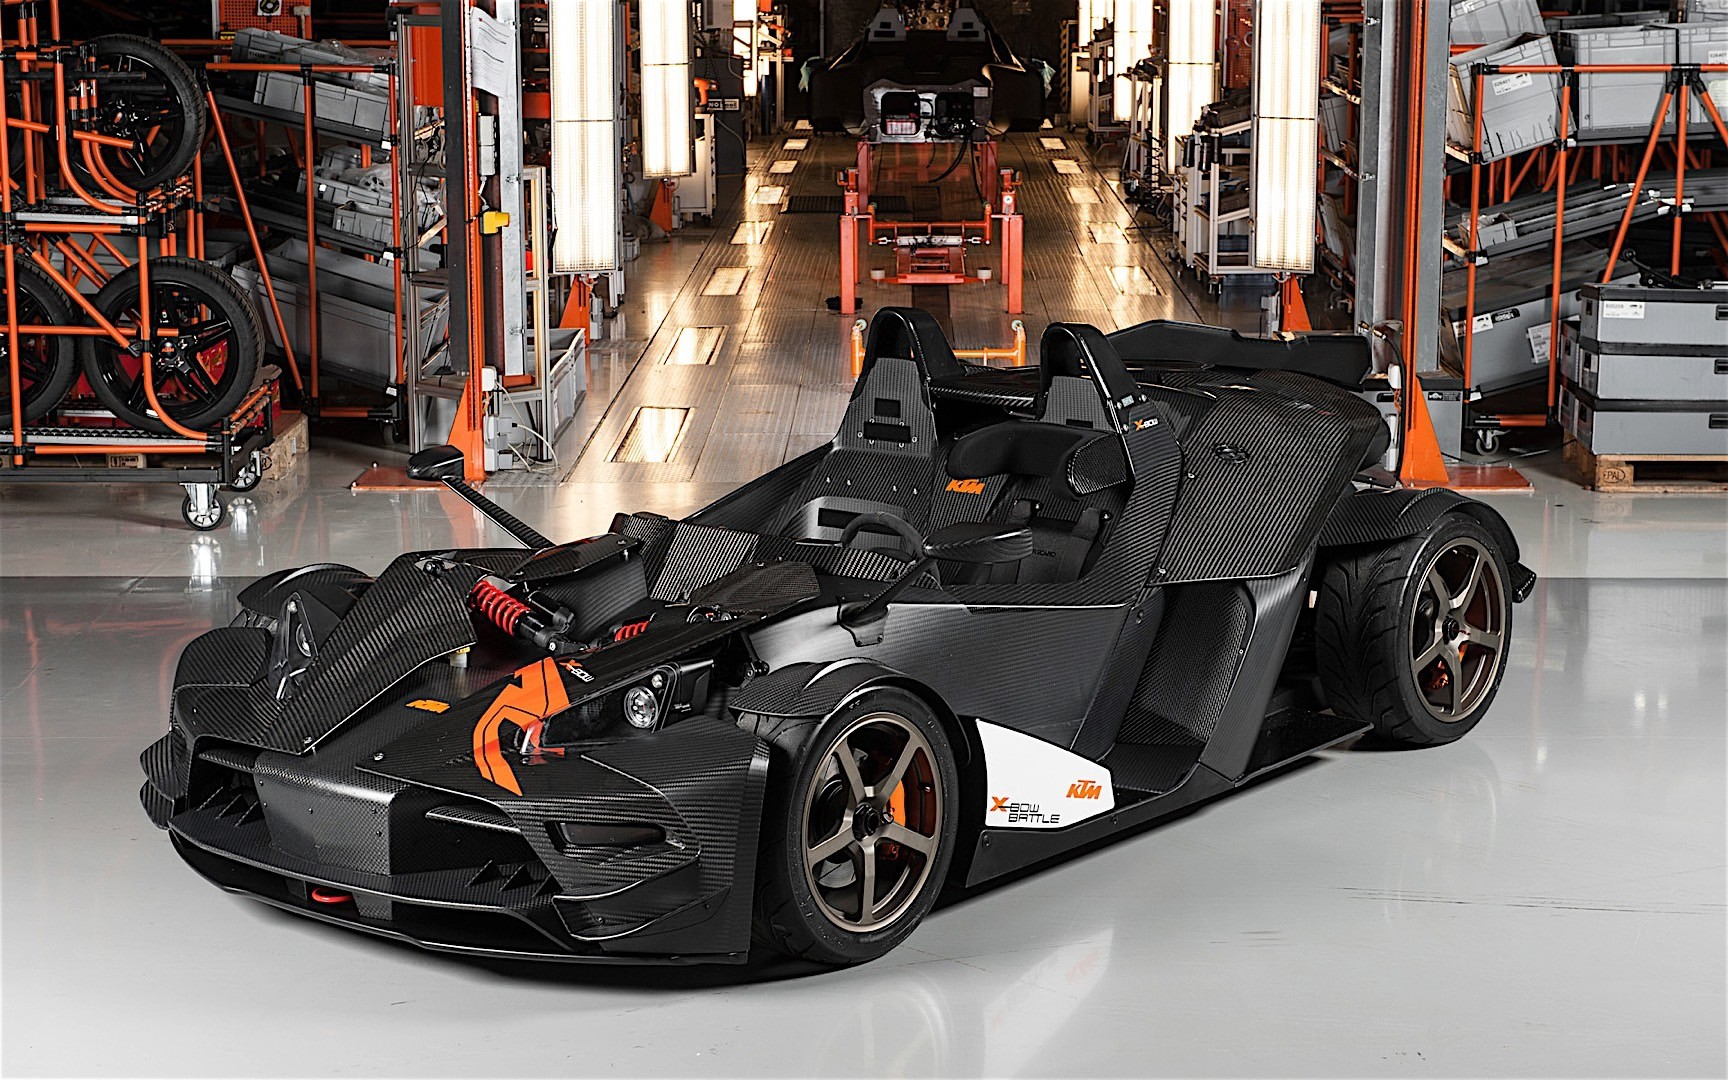 ktm x bow rr specs 2012 2013 2014 2015 2016 2017 2018 autoevolution. Black Bedroom Furniture Sets. Home Design Ideas